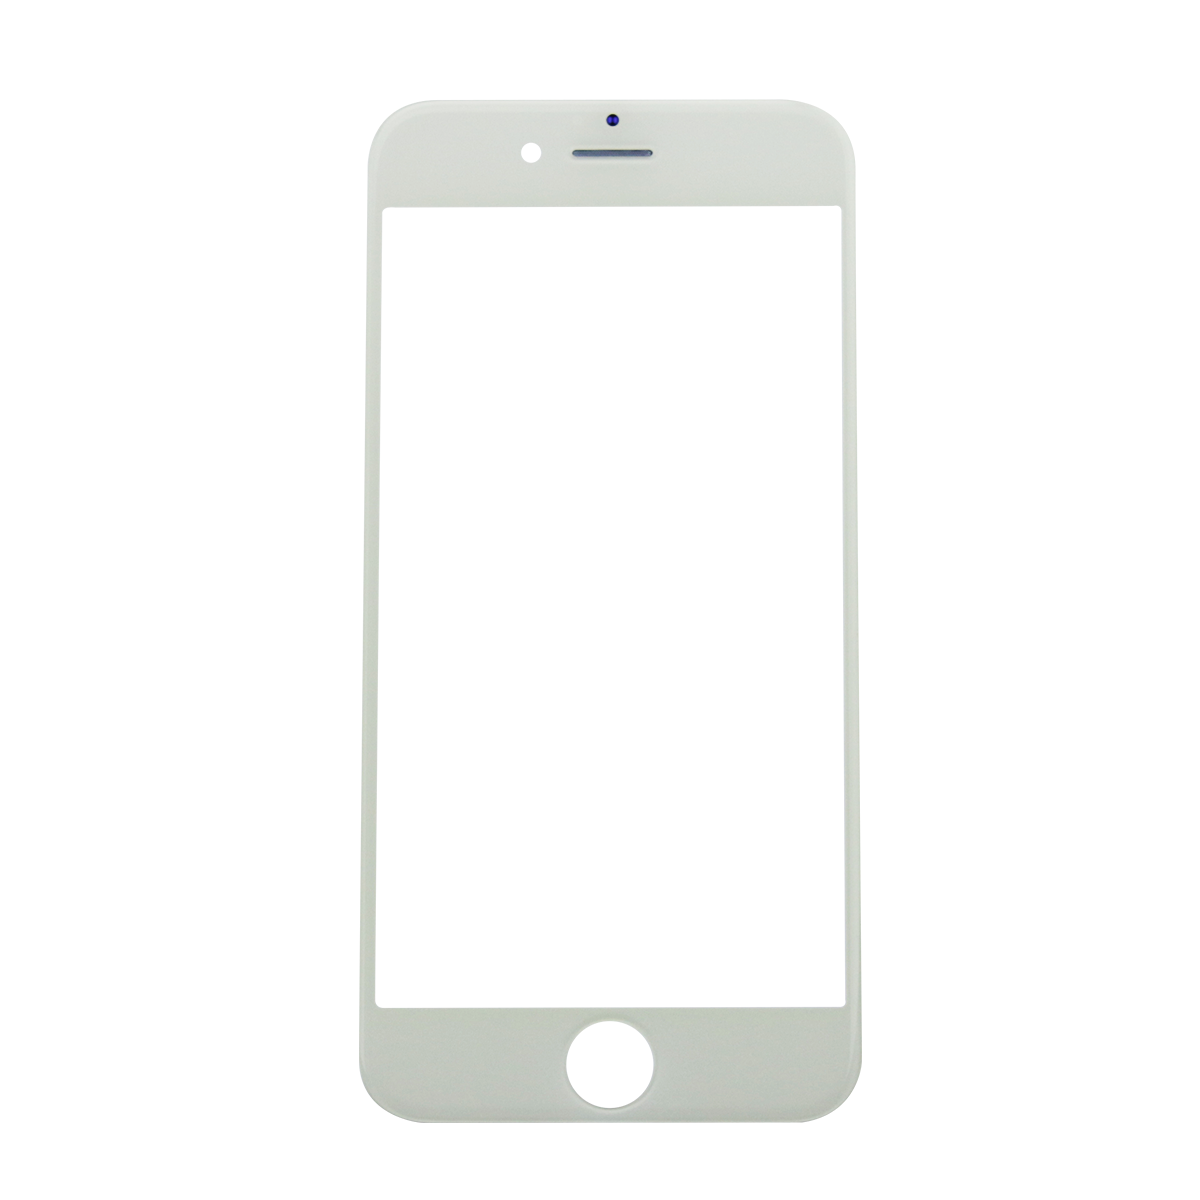 Iphone 6 frame png. White glass lens screen